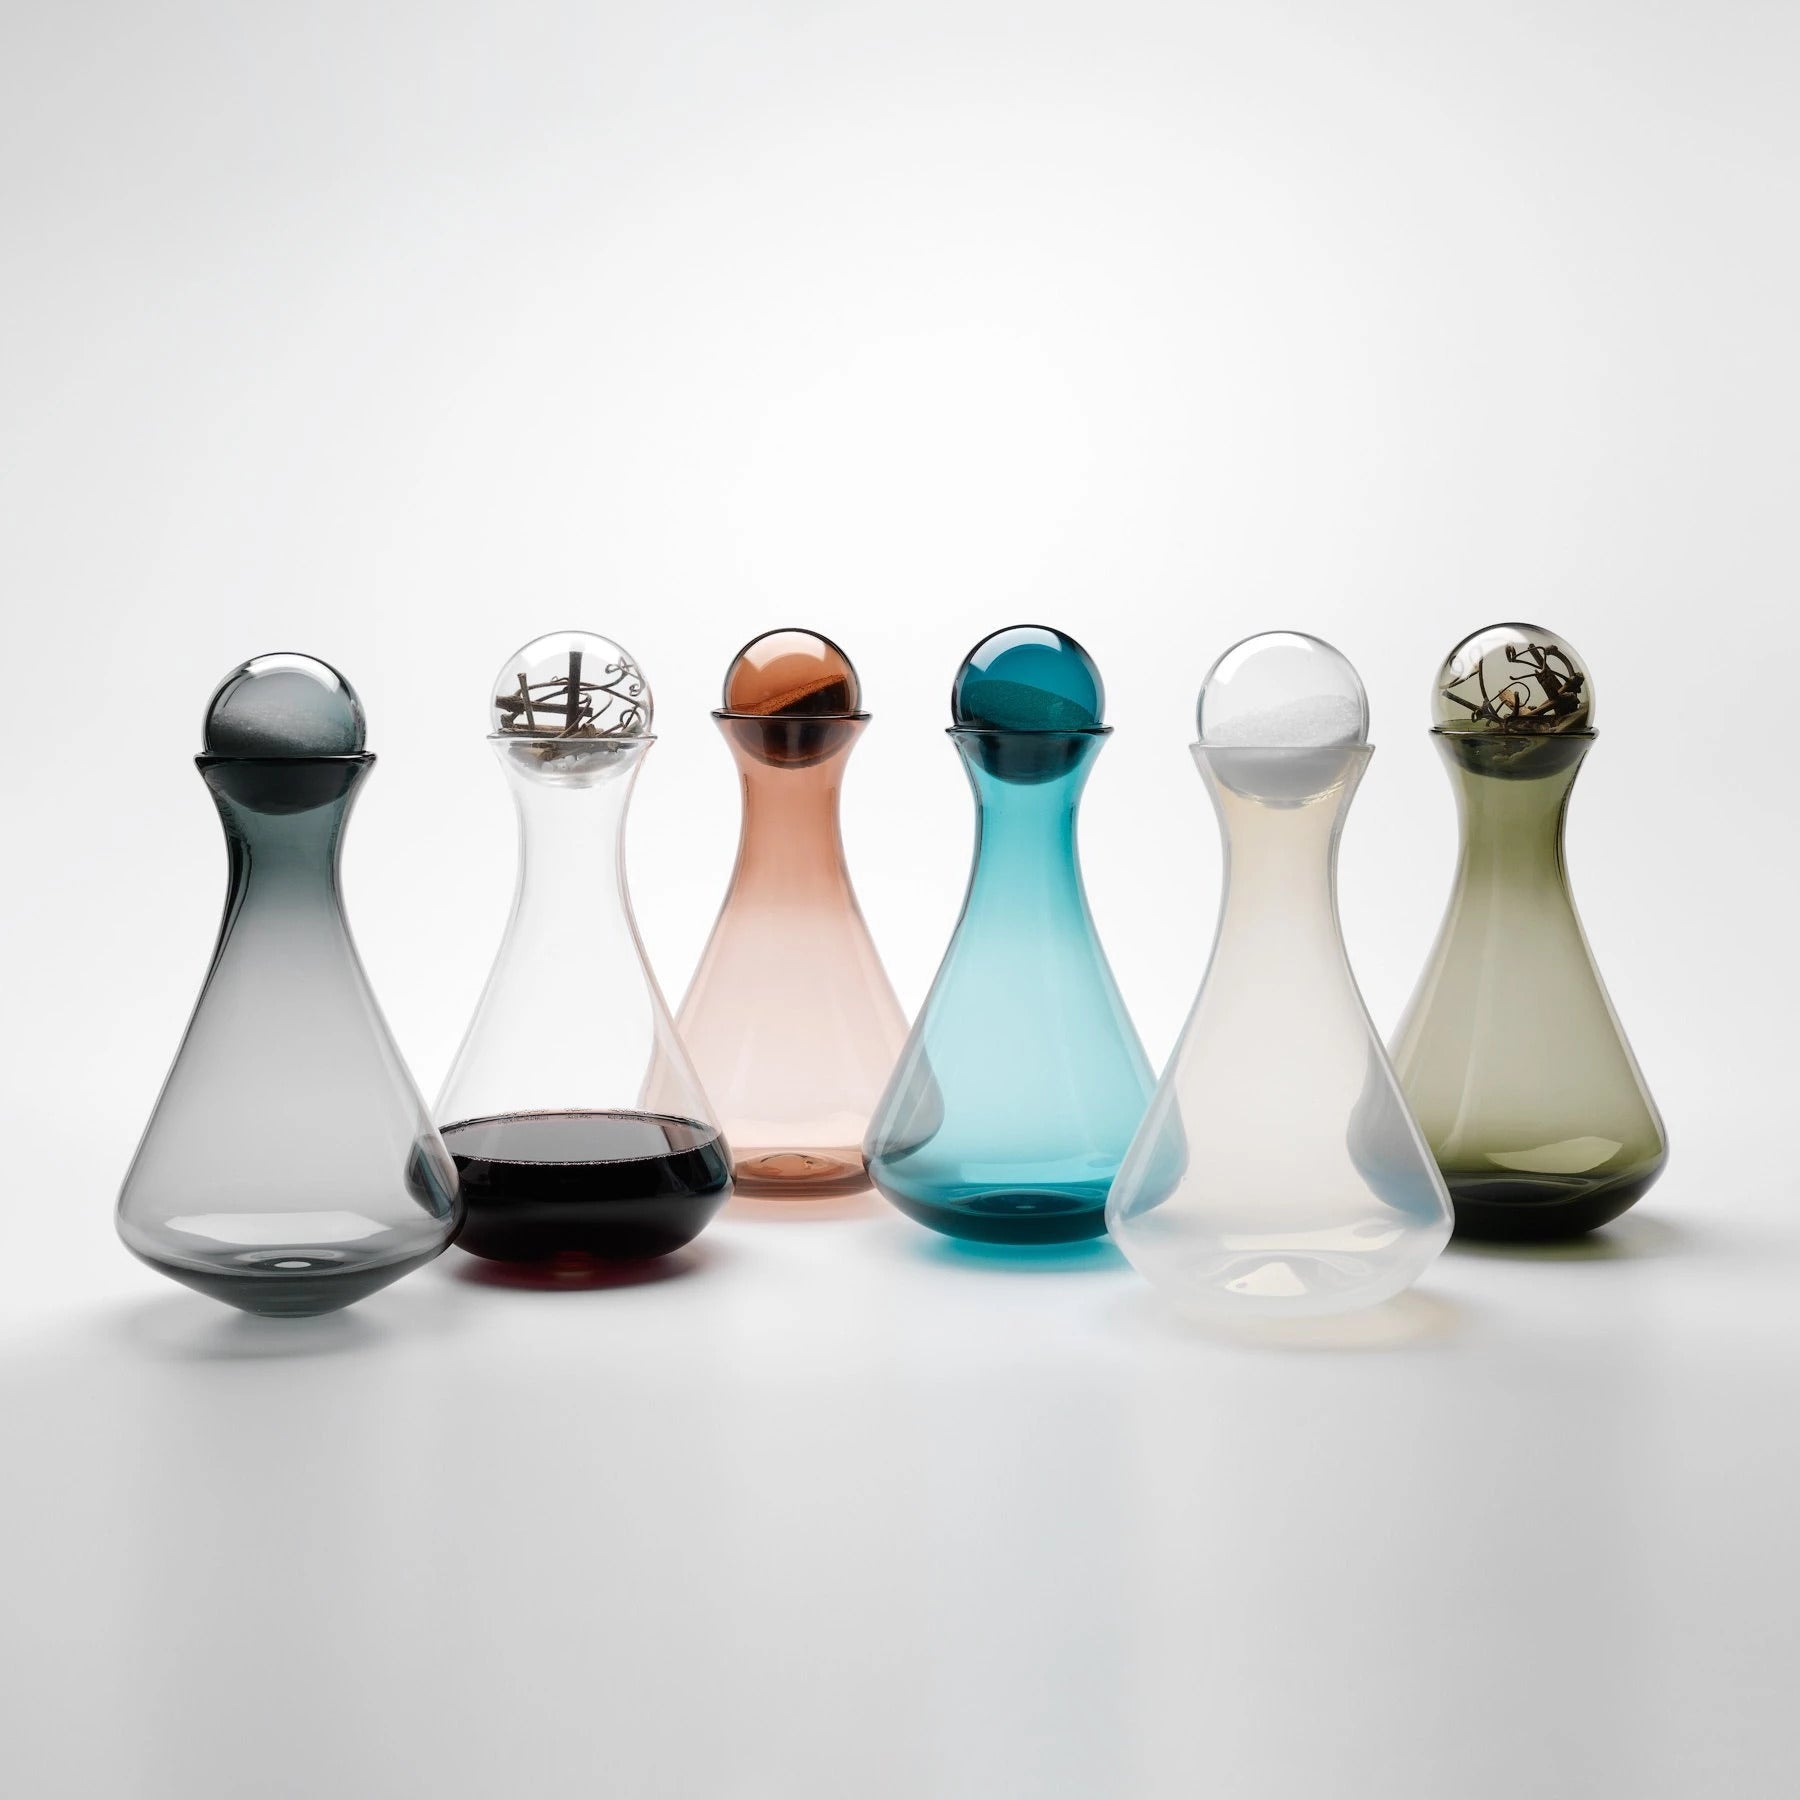 Taste of Australia Decanter | Design by K N K - CoCo Contemporary Connoisseur Gift Store